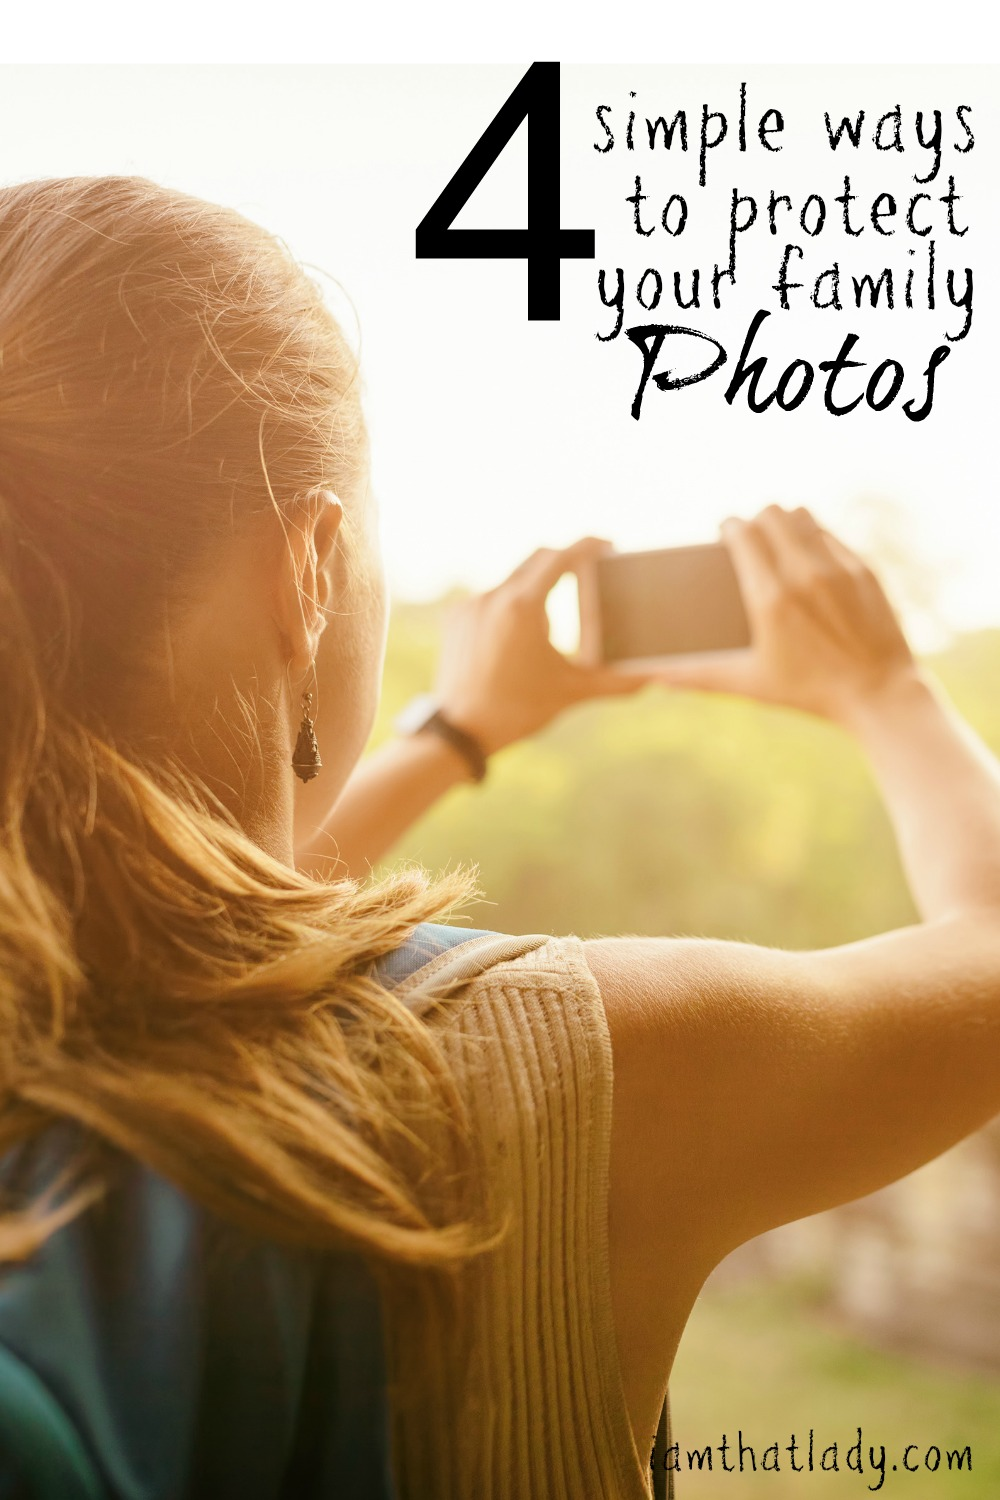 One of my friends just lost all her family pictures from the past 10 years, because she didn't back them up. Here are 4 simple ways to protect your pictures, so that doesn't happen to you. I am using the Sandisk iExpand - save $50 with this coupon https://goo.gl/0hMiiw AD